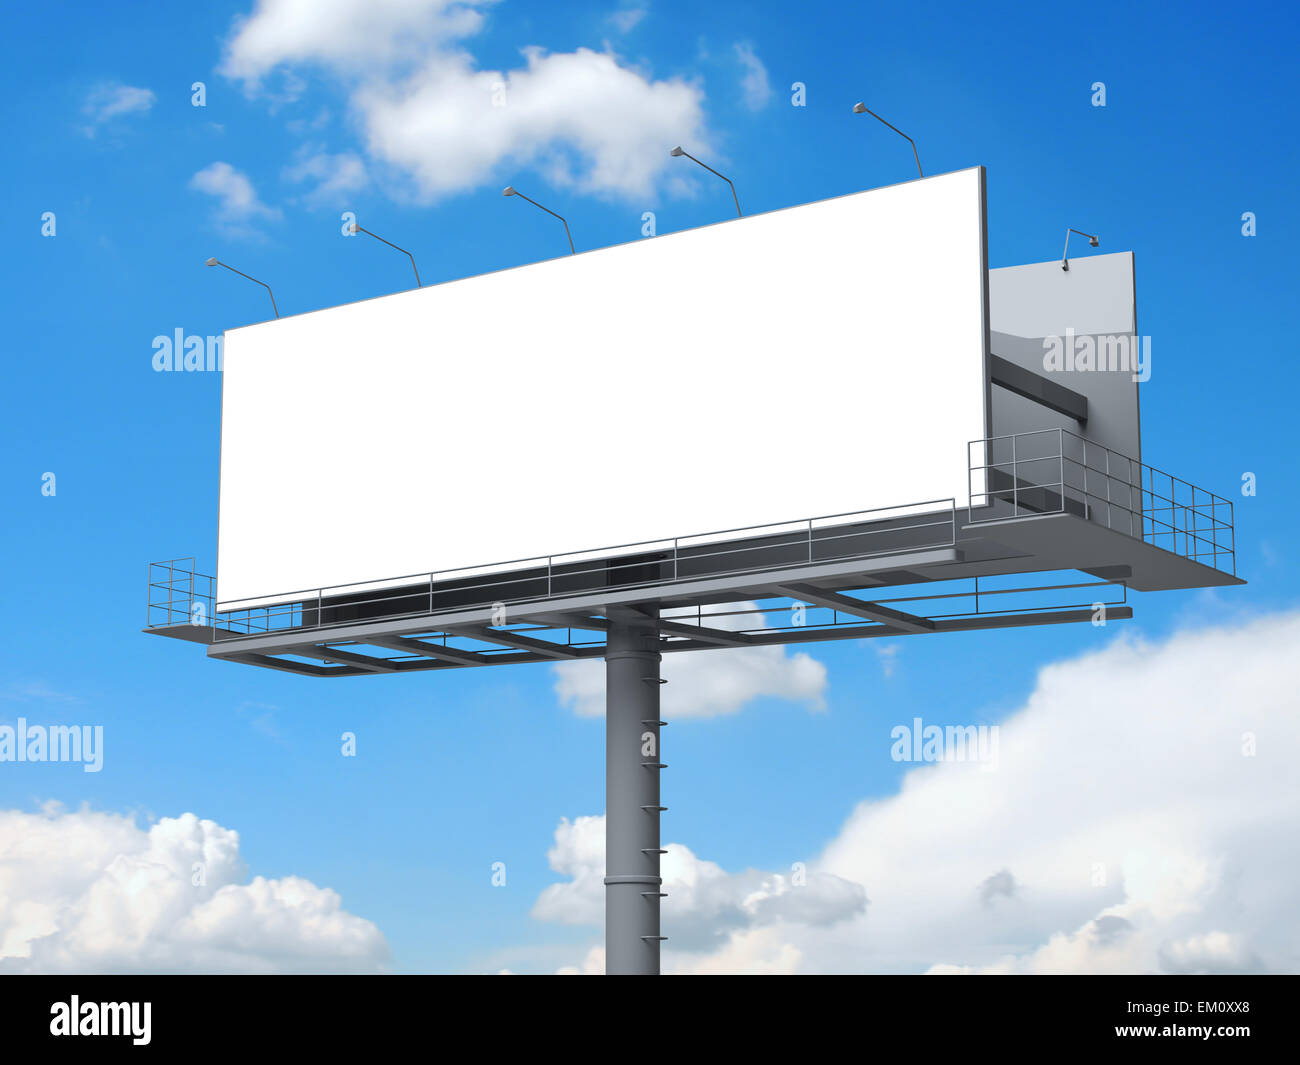 Billboard with empty screen, against blue cloudy sky - Stock Image